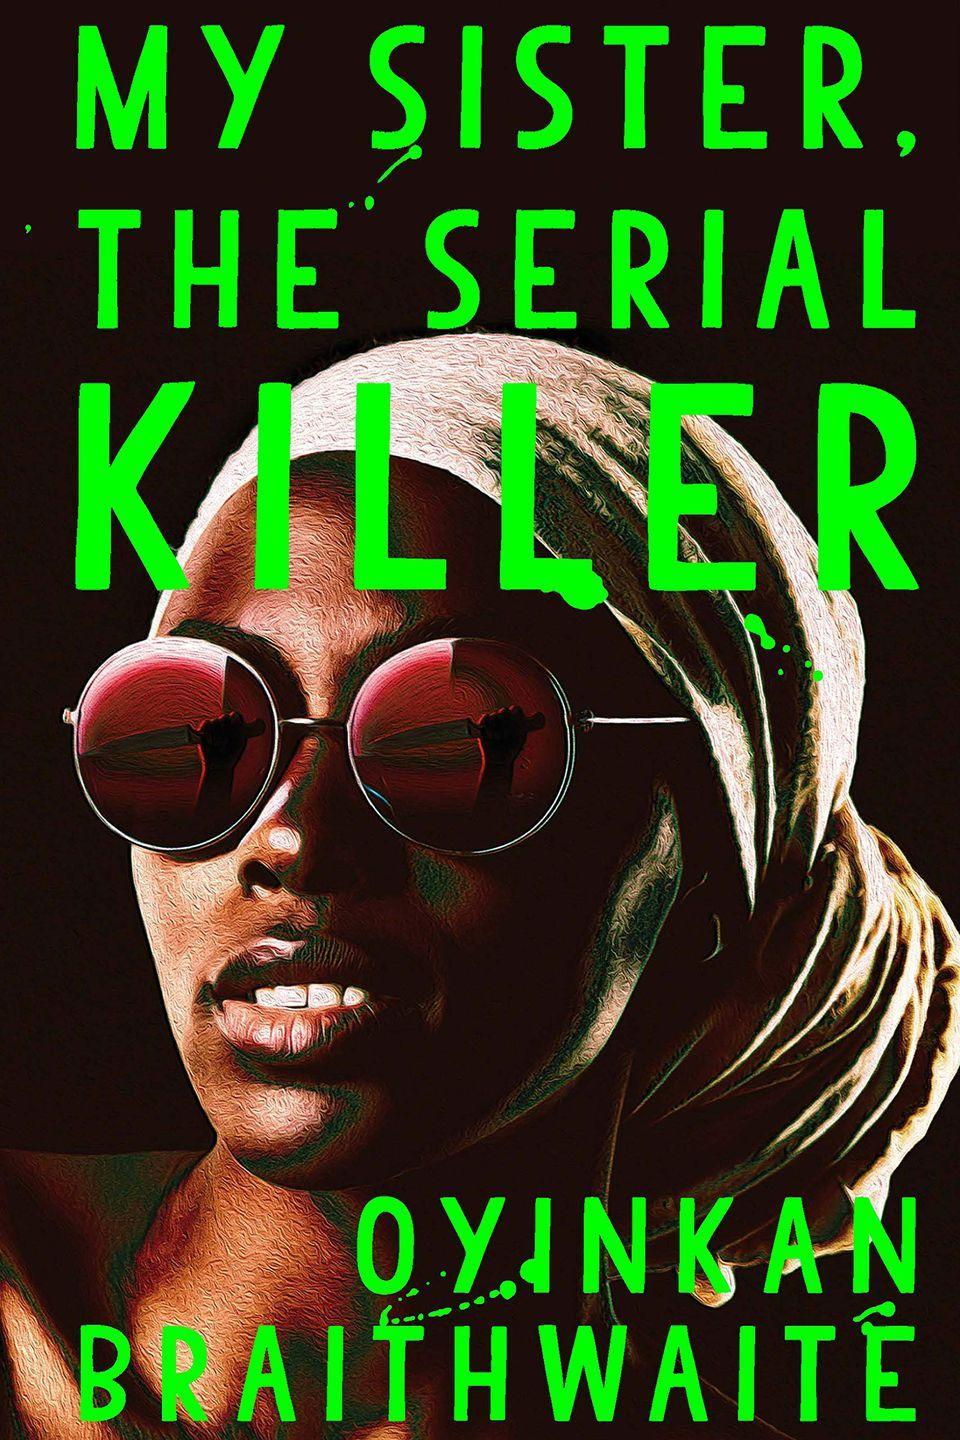 "<p>Set in Lagos, this is an unputdownable, darkly comic novel following Korede, whose little sister is in the habit of killing her boyfriends (three so far), and Korede has patiently helped her clean (and cover) it up. Hilarious, disturbing, and so much fun to read. </p><p><em>Out in January </em></p><p><em><a href=""https://www.amazon.co.uk/Sister-Serial-Killer-Oyinkan-Braithwaite/dp/178649597X/ref=sr_1_1?ie=UTF8&qid=1545234978&sr=8-1&keywords=my+sister%252C+the+serial+killer%252C+oyinkan+braithwaite"" rel=""nofollow noopener"" target=""_blank"" data-ylk=""slk:PRE-ORDER"" class=""link rapid-noclick-resp"">PRE-ORDER</a><br></em></p>"